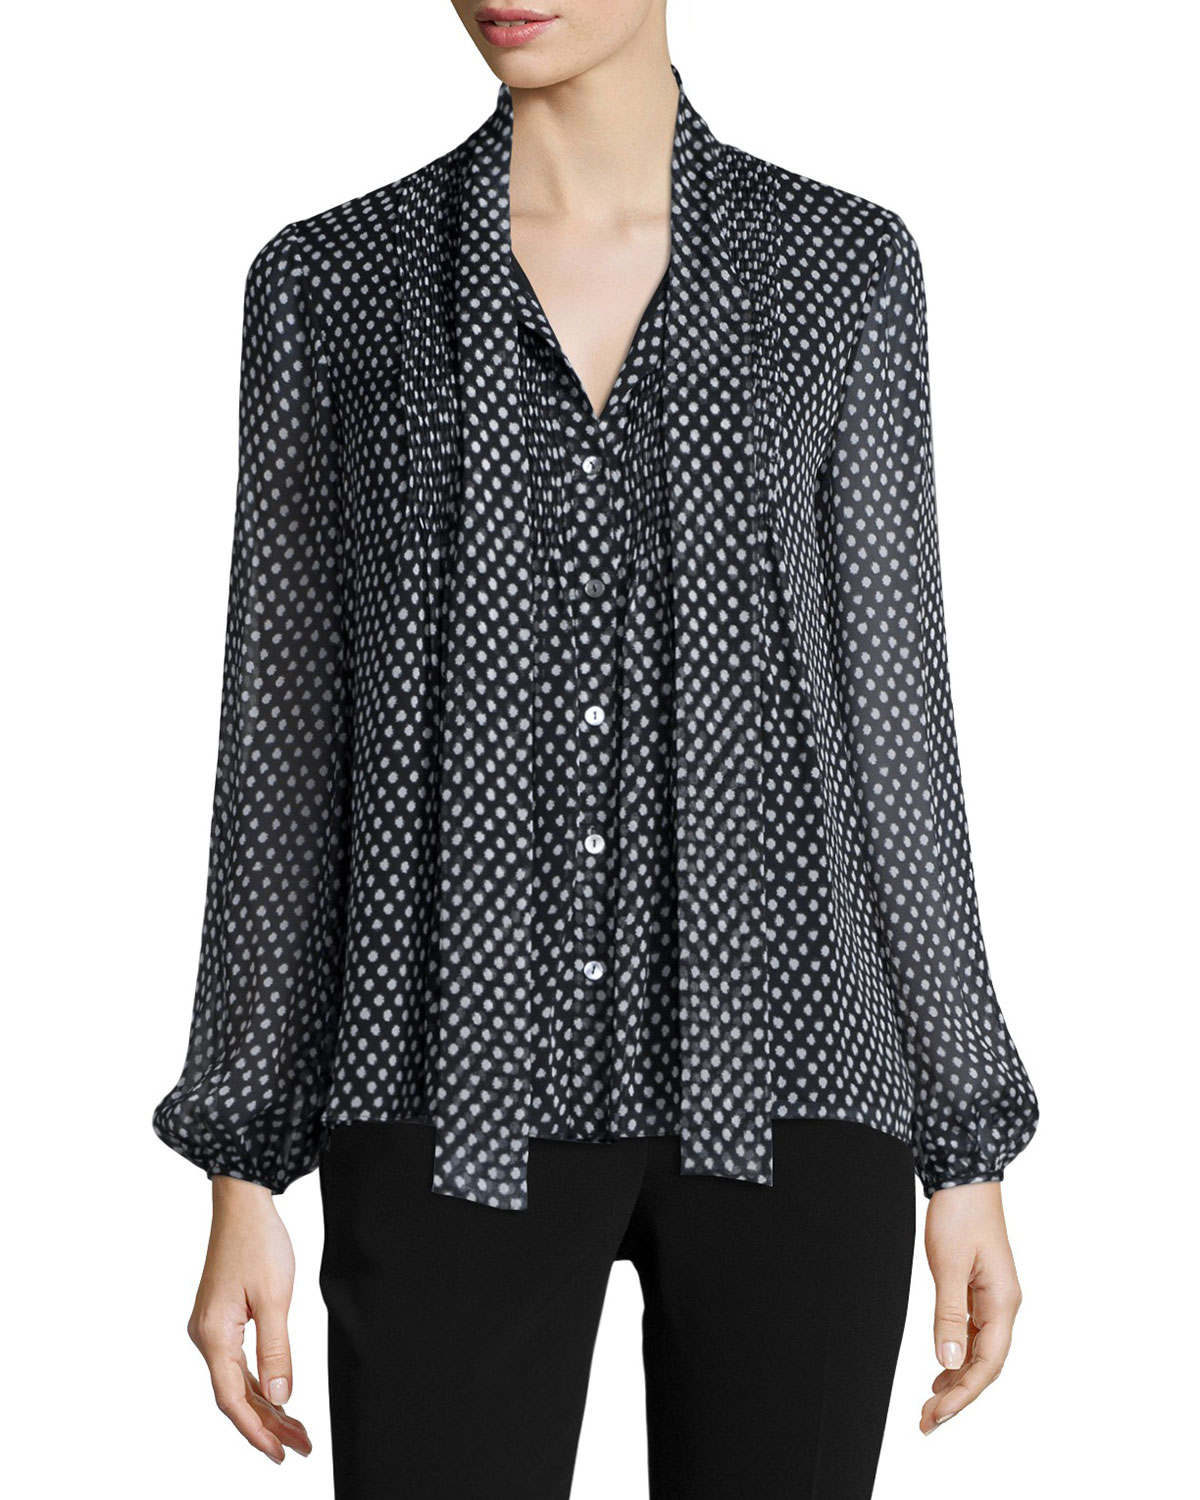 Marjorie Dotted Batik Silk Top, Black